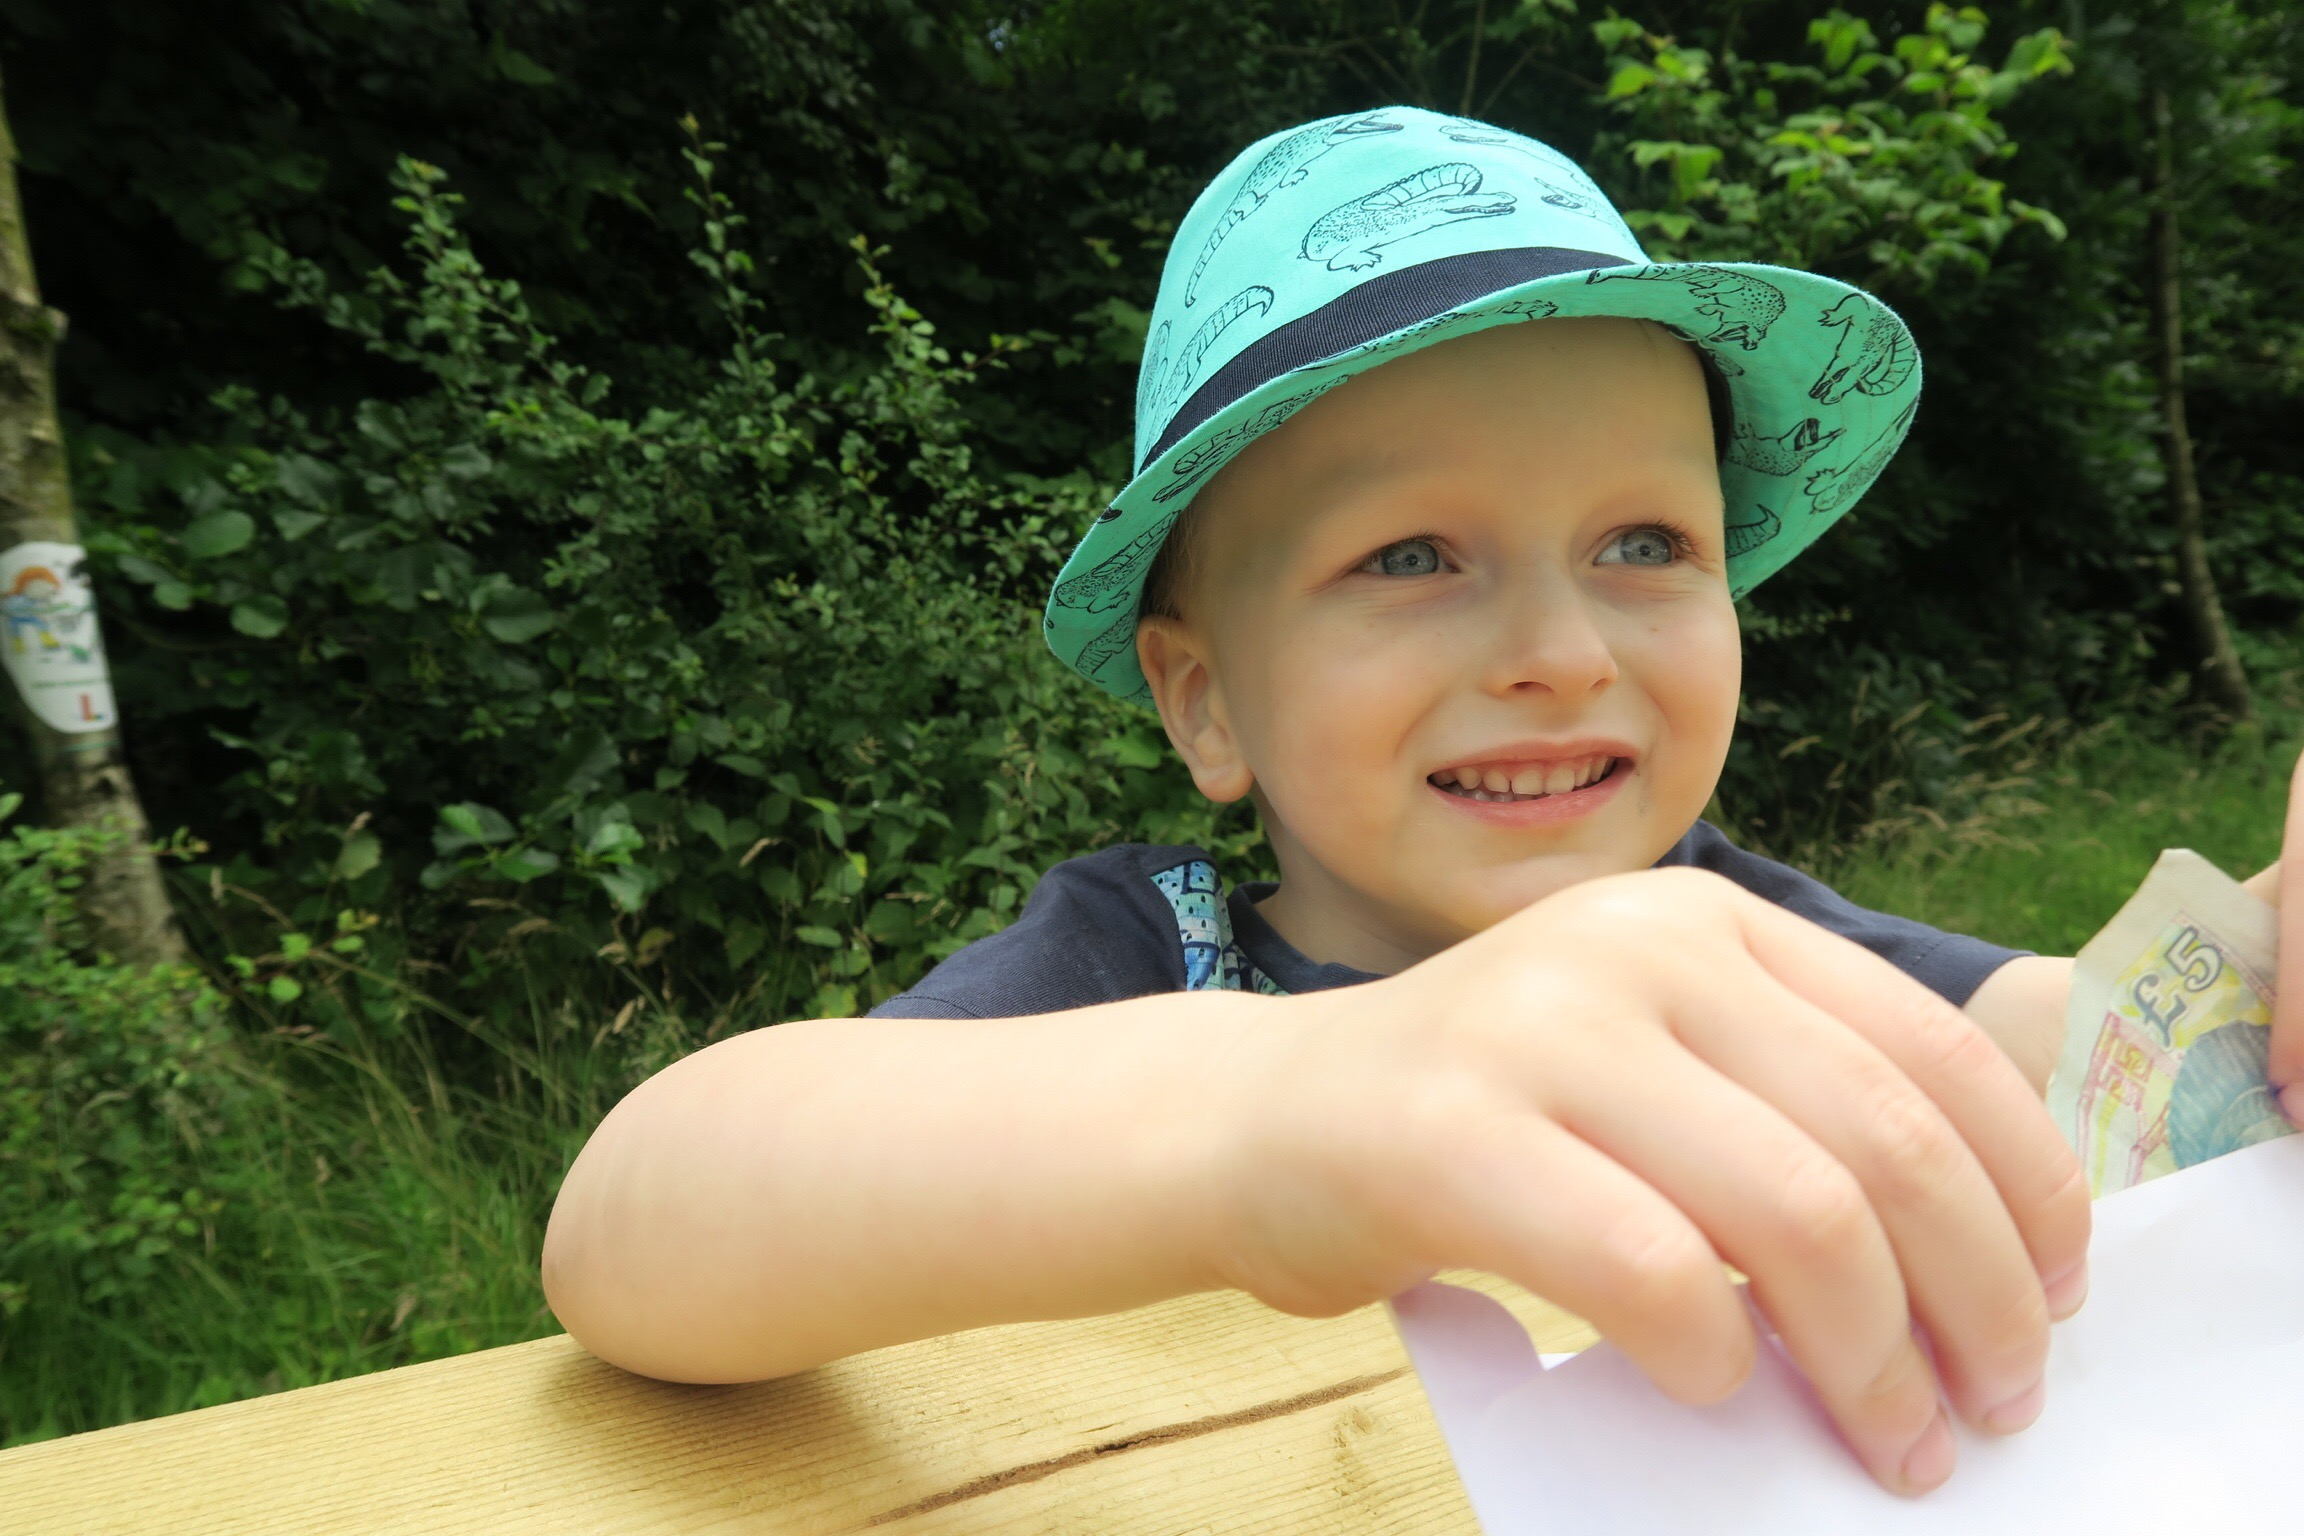 A 4 year old boy wearing a green hat sat at a picnic table counting his holiday money